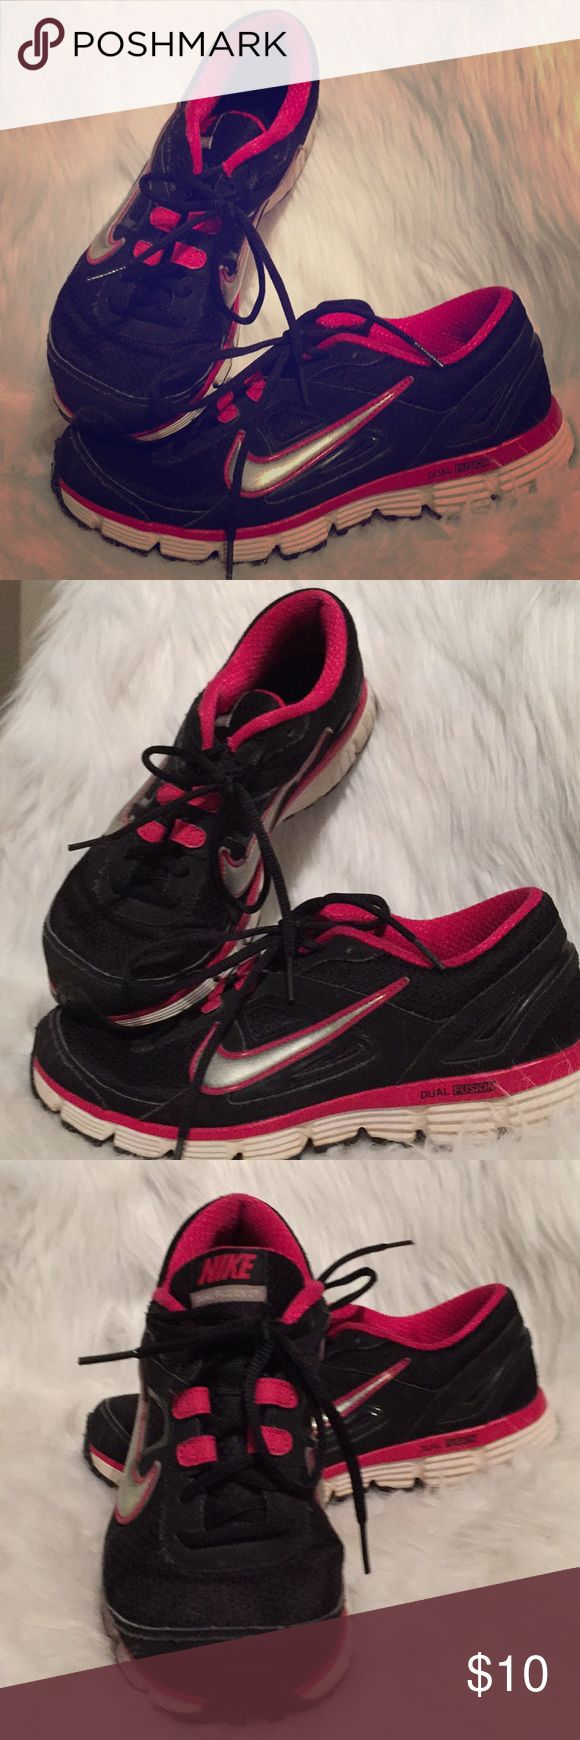 Nike Dual Fusion, 9, women's tennis shoes Nike Dual Fusion, 9, women's tennis shoes, Hot pink, black, silver and white. Sturdy shoes and cute. In good shape. Sneakers, cross training, athletic Nike Shoes Athletic Shoes